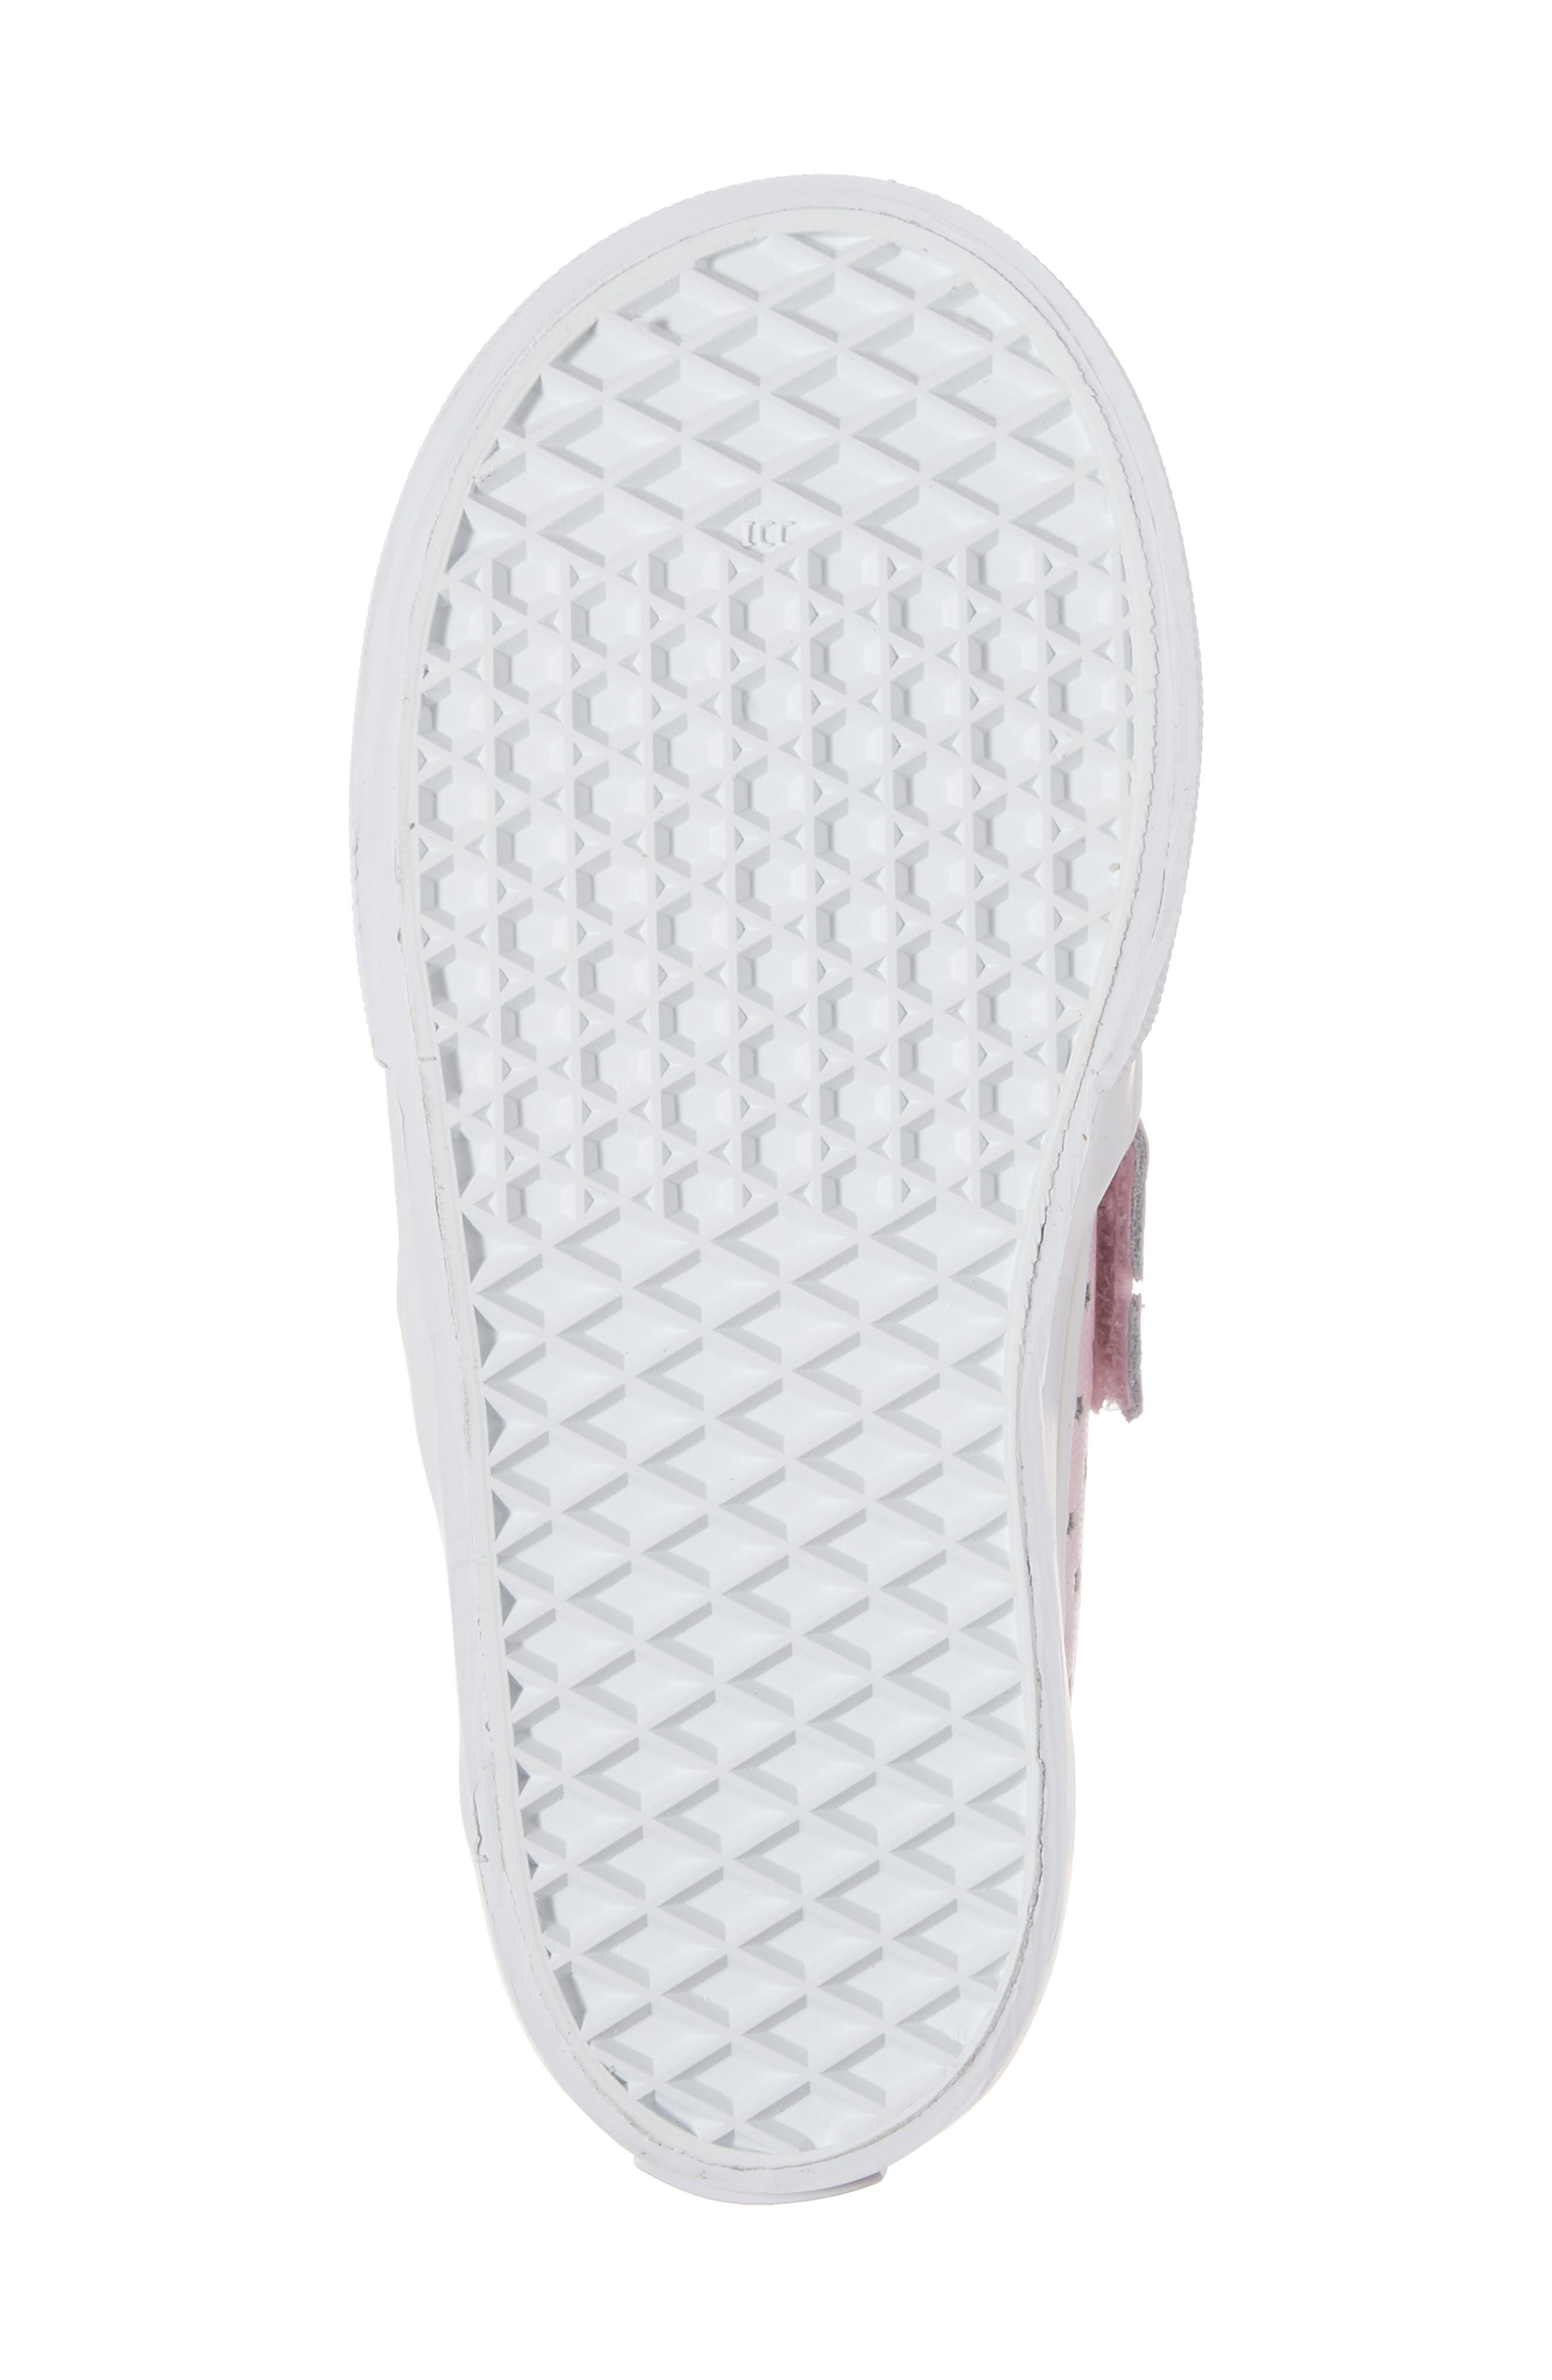 Classic Perforated Slip-On Sneaker,                             Alternate thumbnail 6, color,                             650